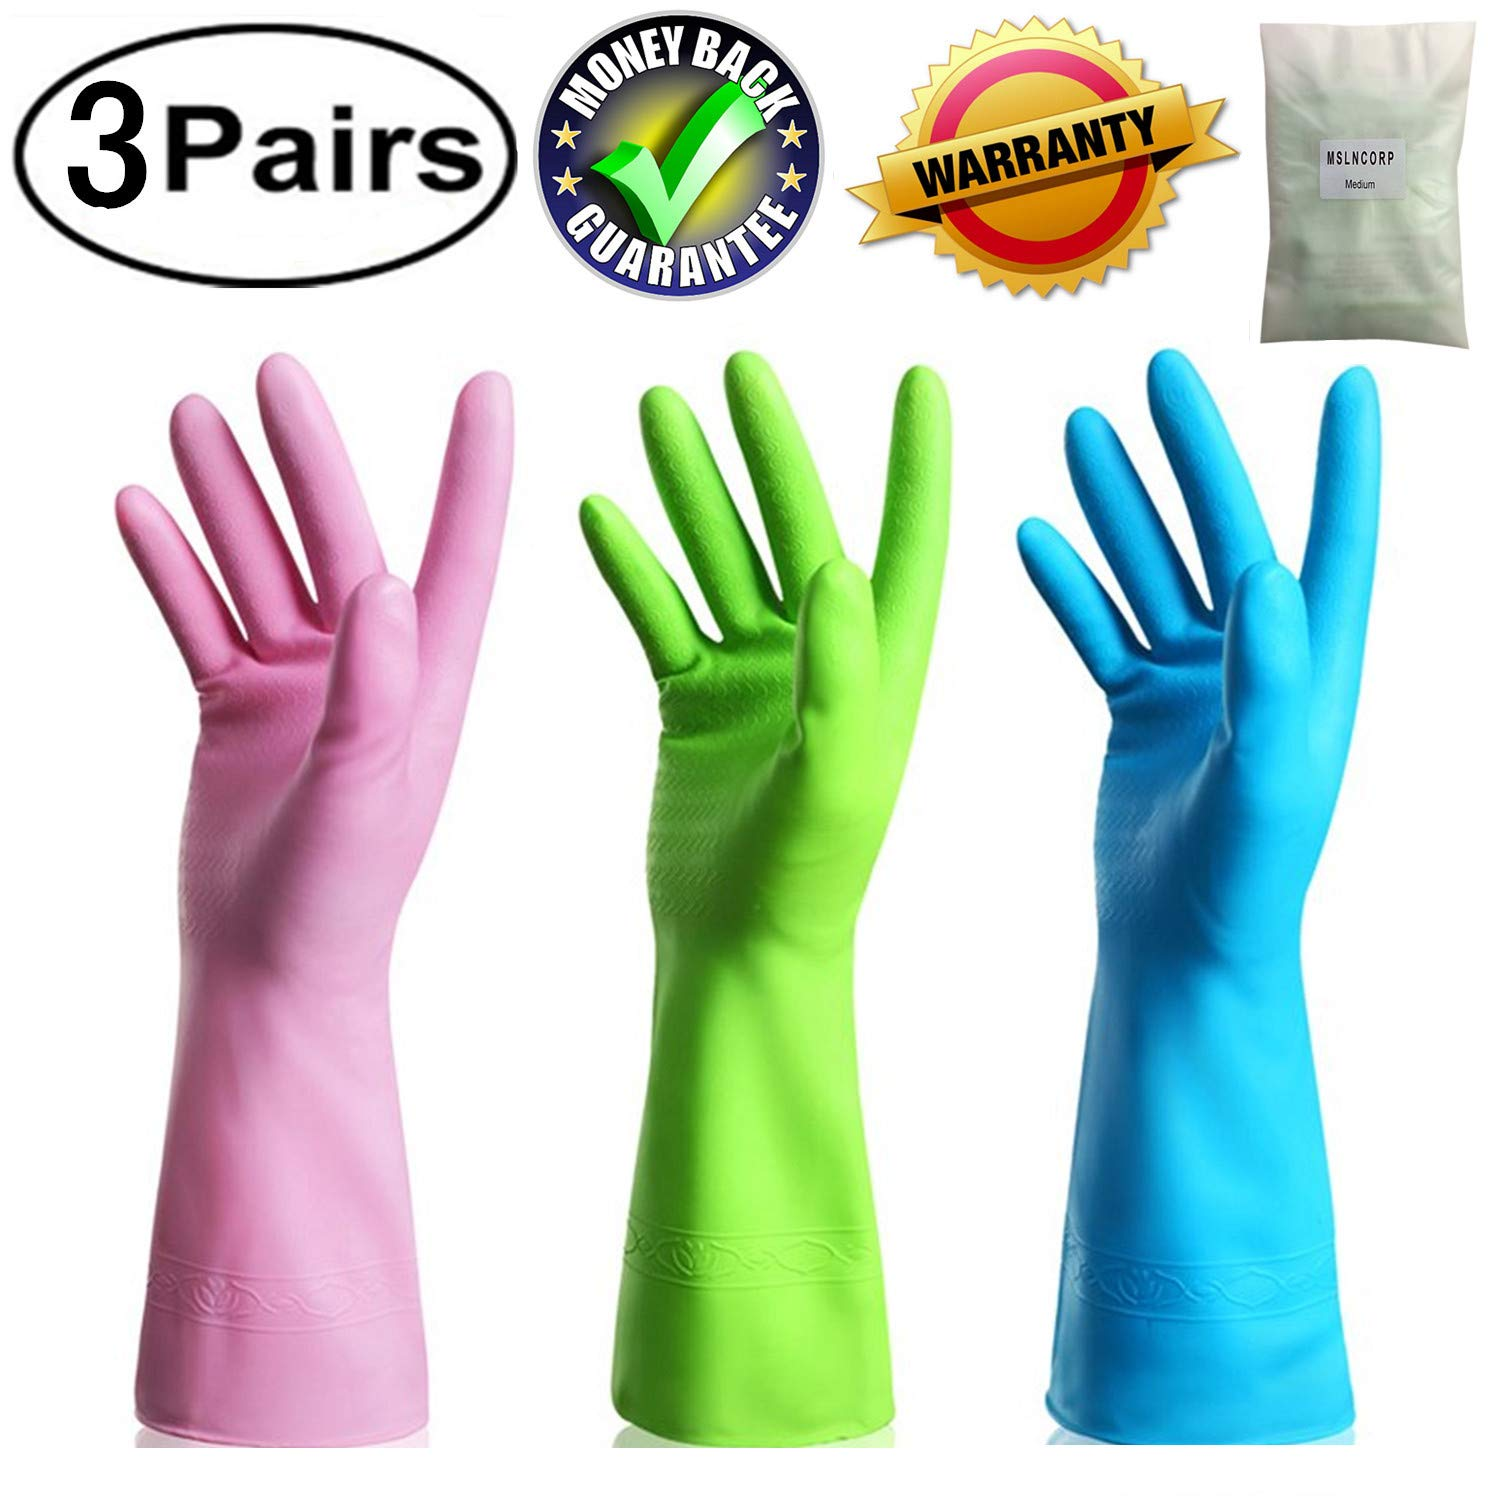 Kitchen Rubber Cleaning Gloves Dishwashing Clean Latex Glove Reusable with Household Powder Free (3 Pairs Medium)